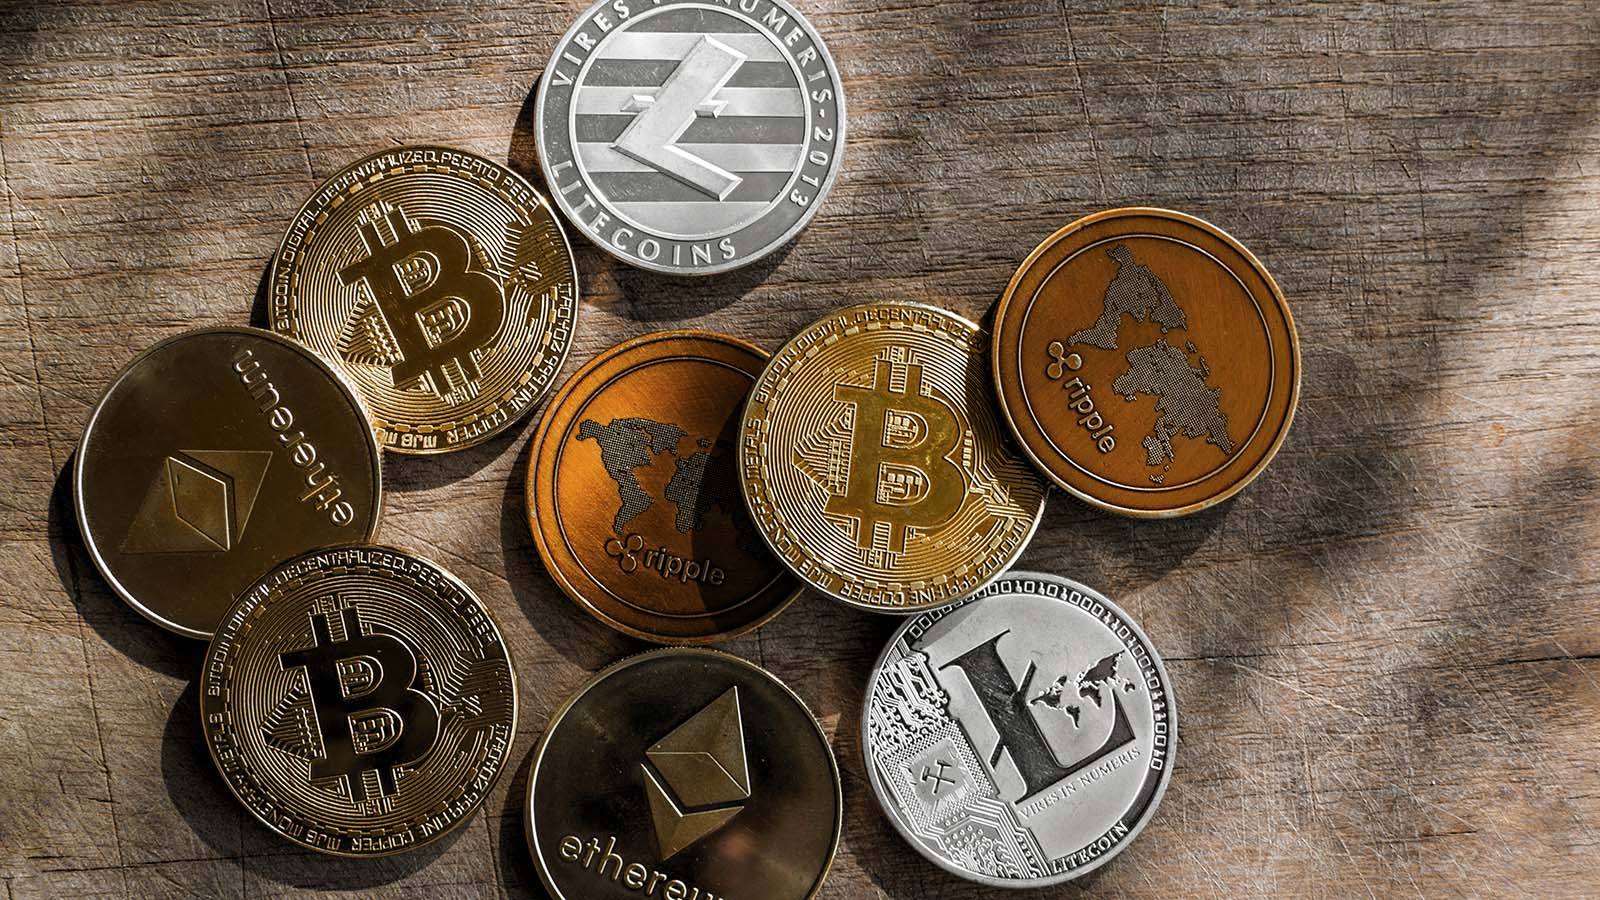 Altcoins - 7 Altcoins That Should Live Long After The Crypto Bubble Bursts